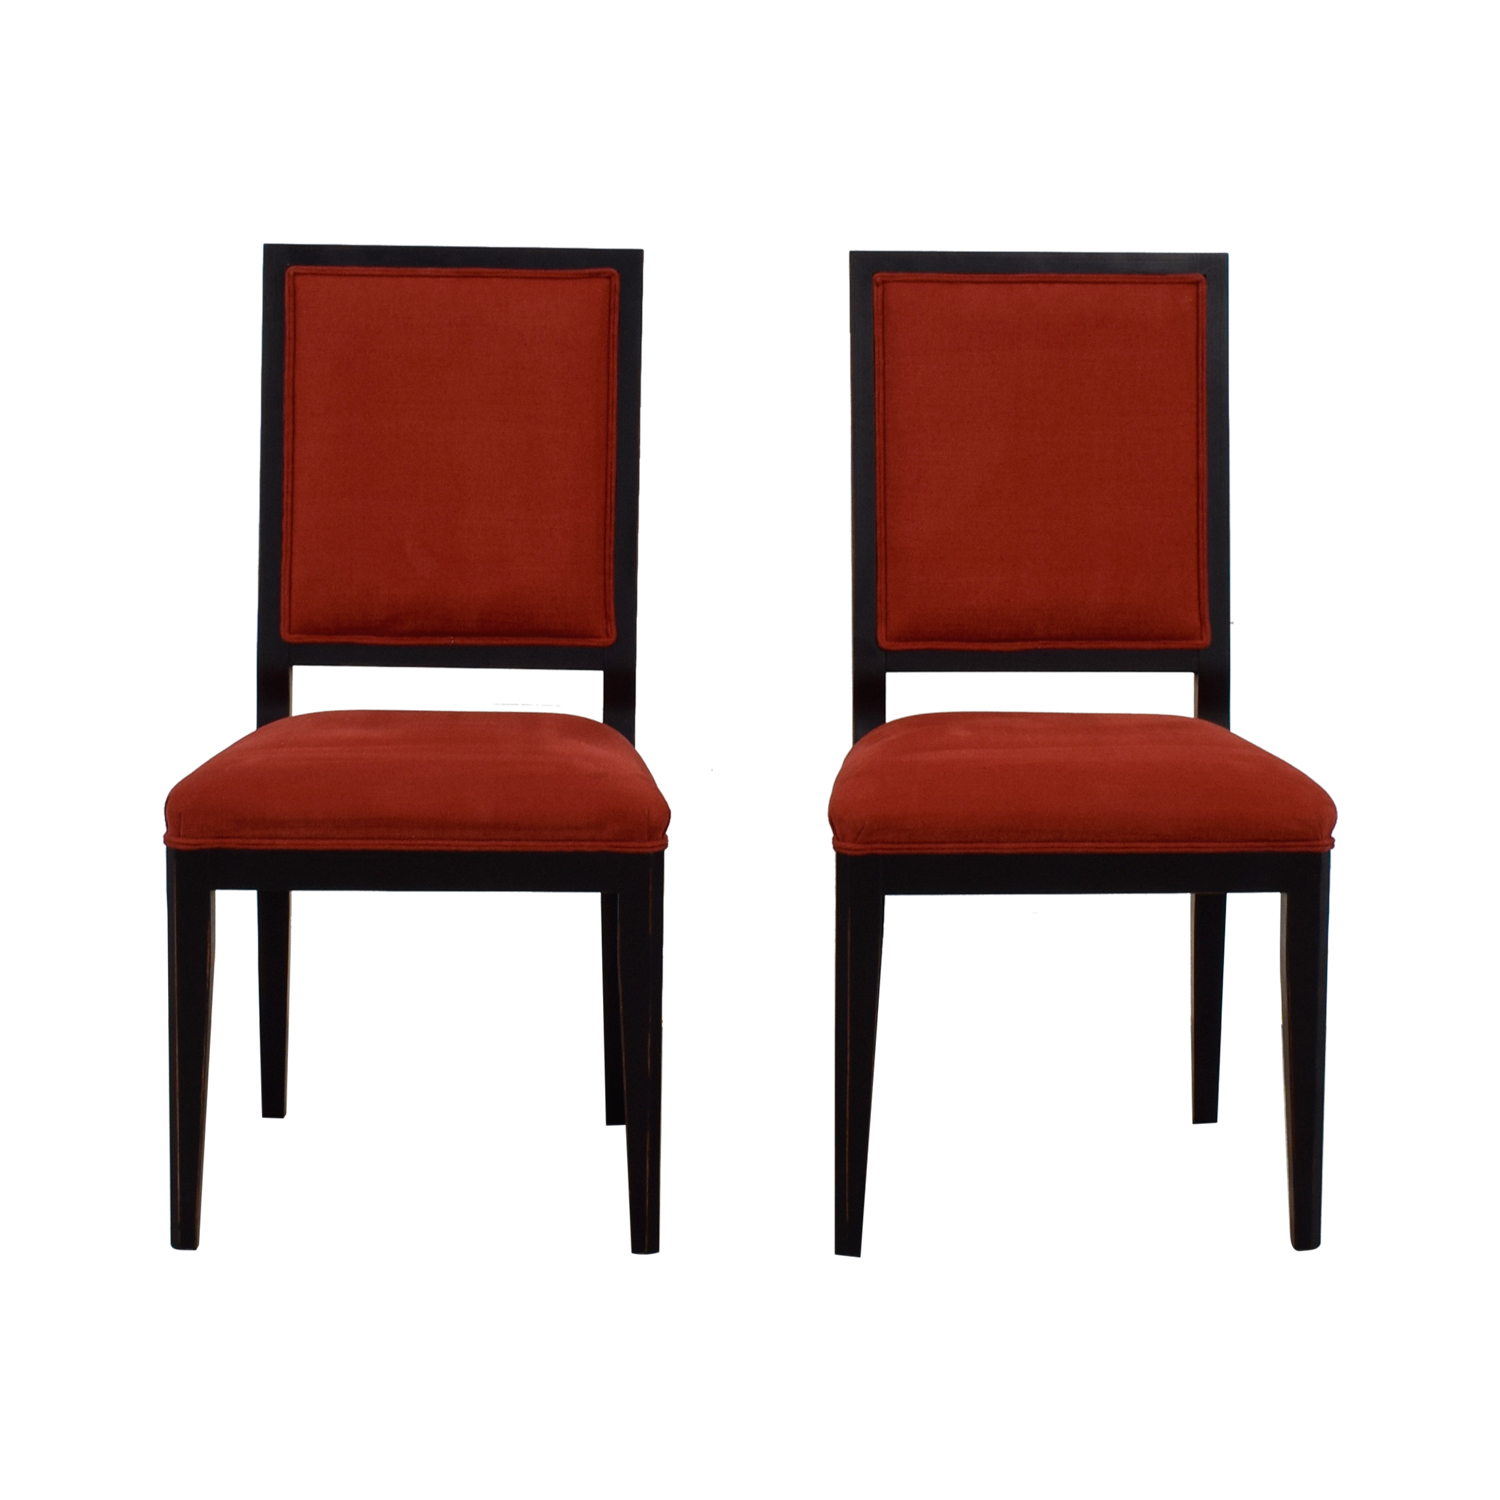 Buying and Design Red Upholstered Dining Chairs sale